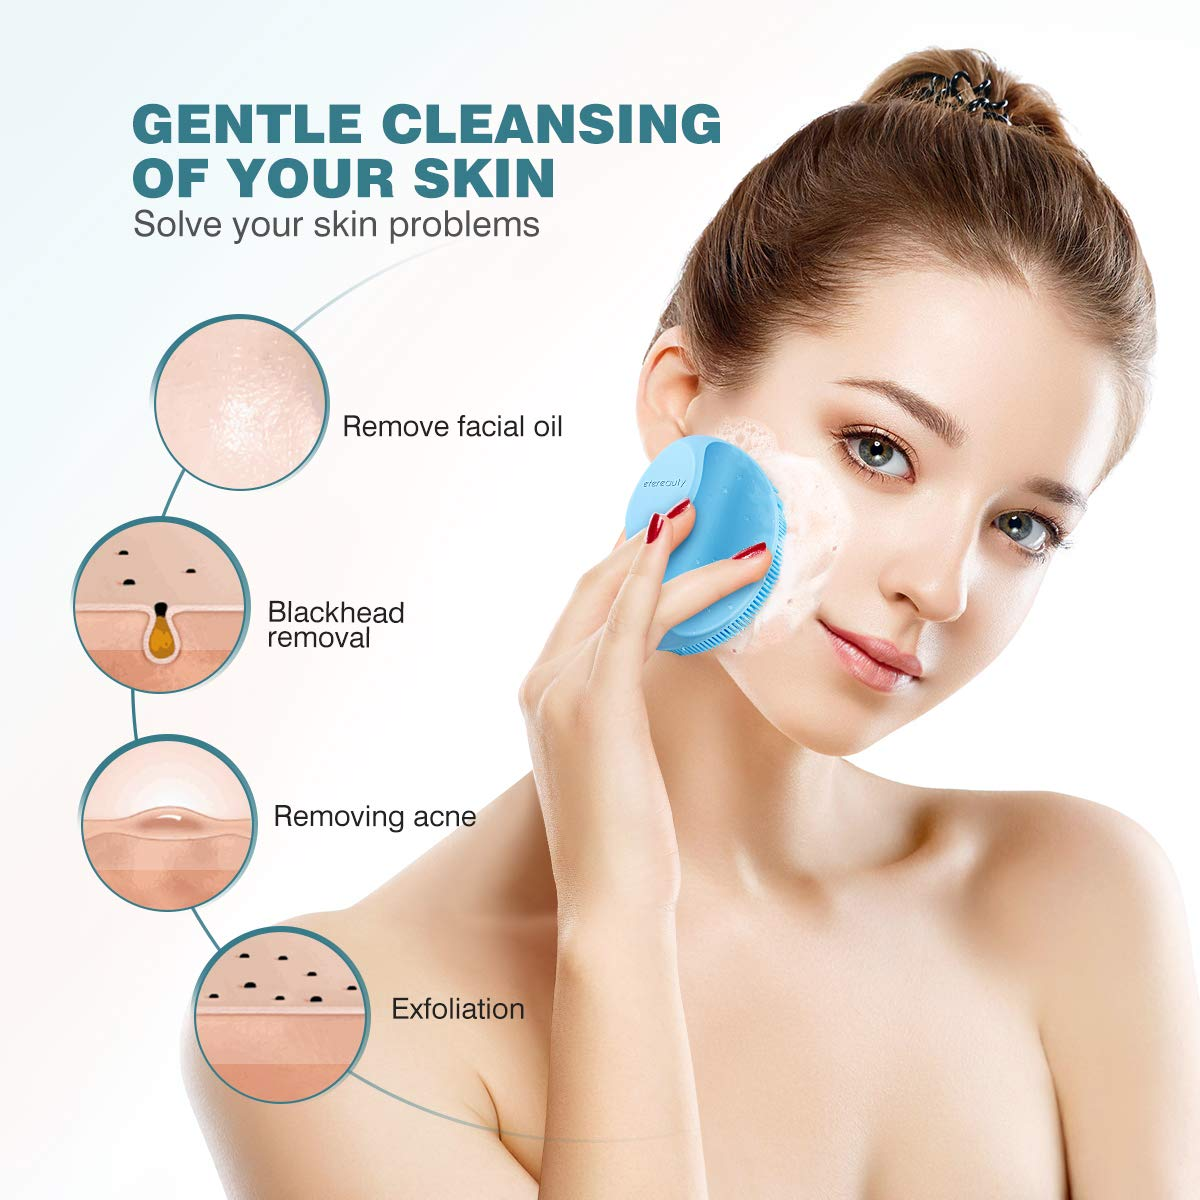 Silicone Face Scrubber Exfoliator Brush, Manual Facial Cleansing Brush Pad Soft Face Cleanser 2 Pack (Yellow and Blue)